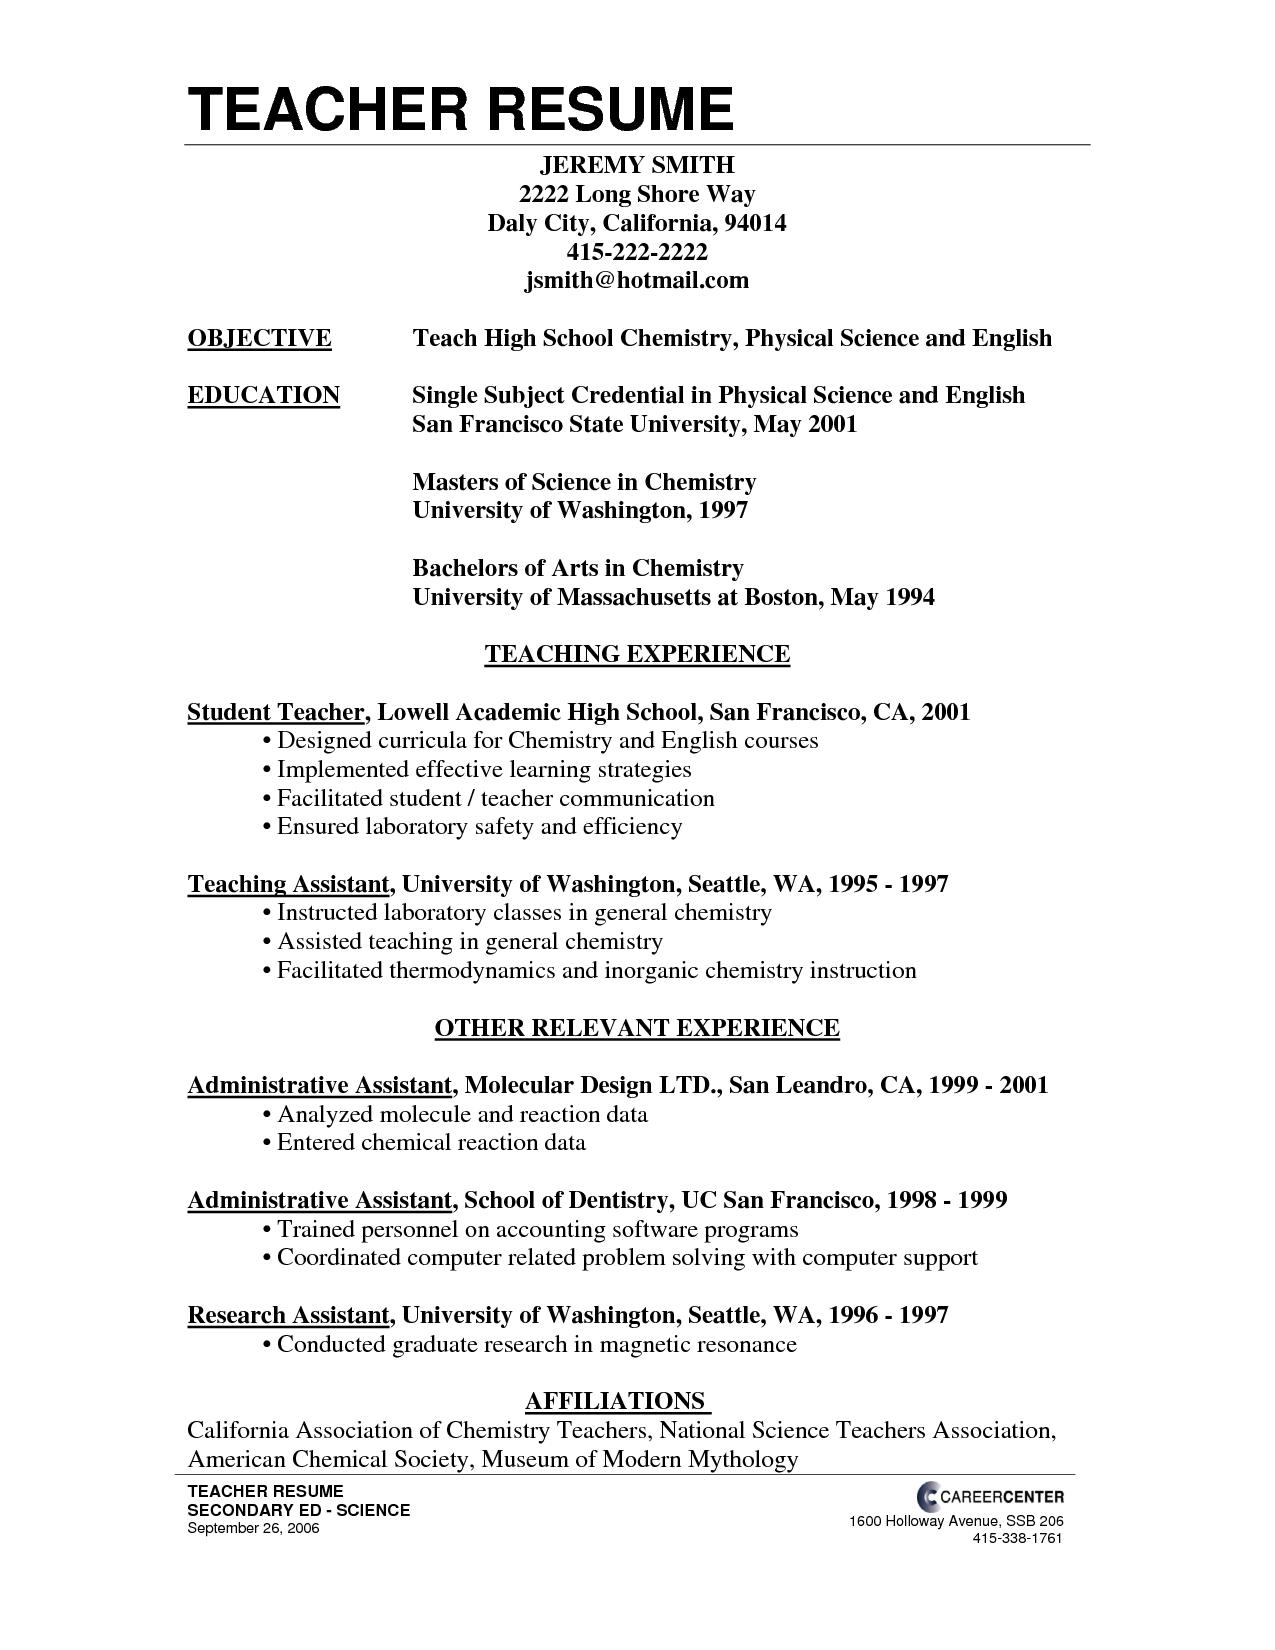 objective resume of teacher college - Objective Of Resume Sample